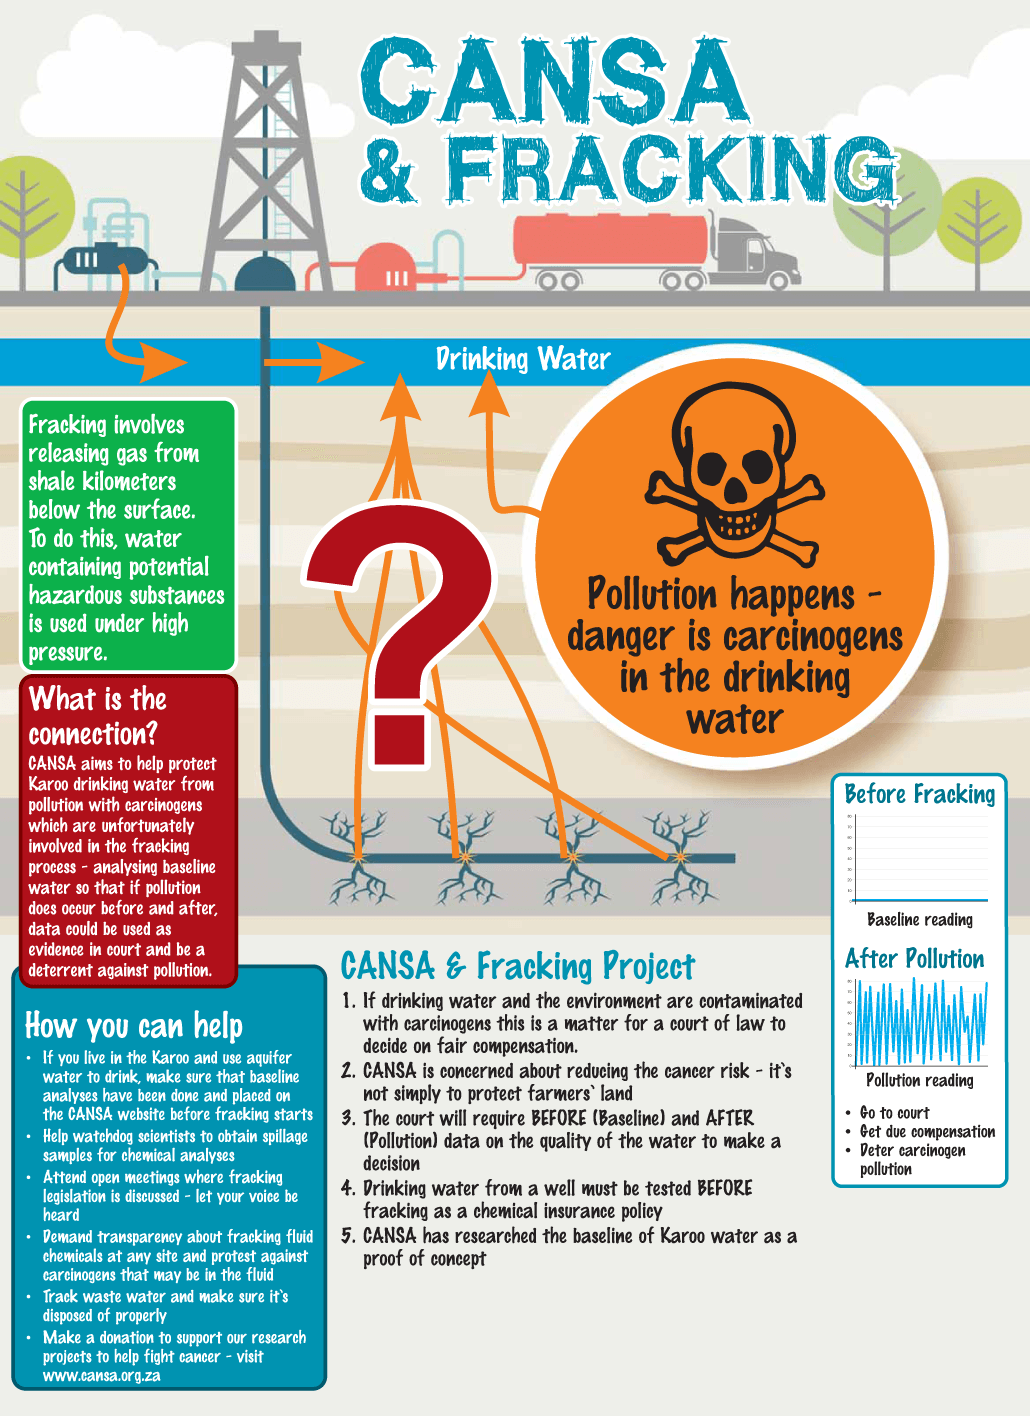 CANSA-Fracking-Infographic-20150121